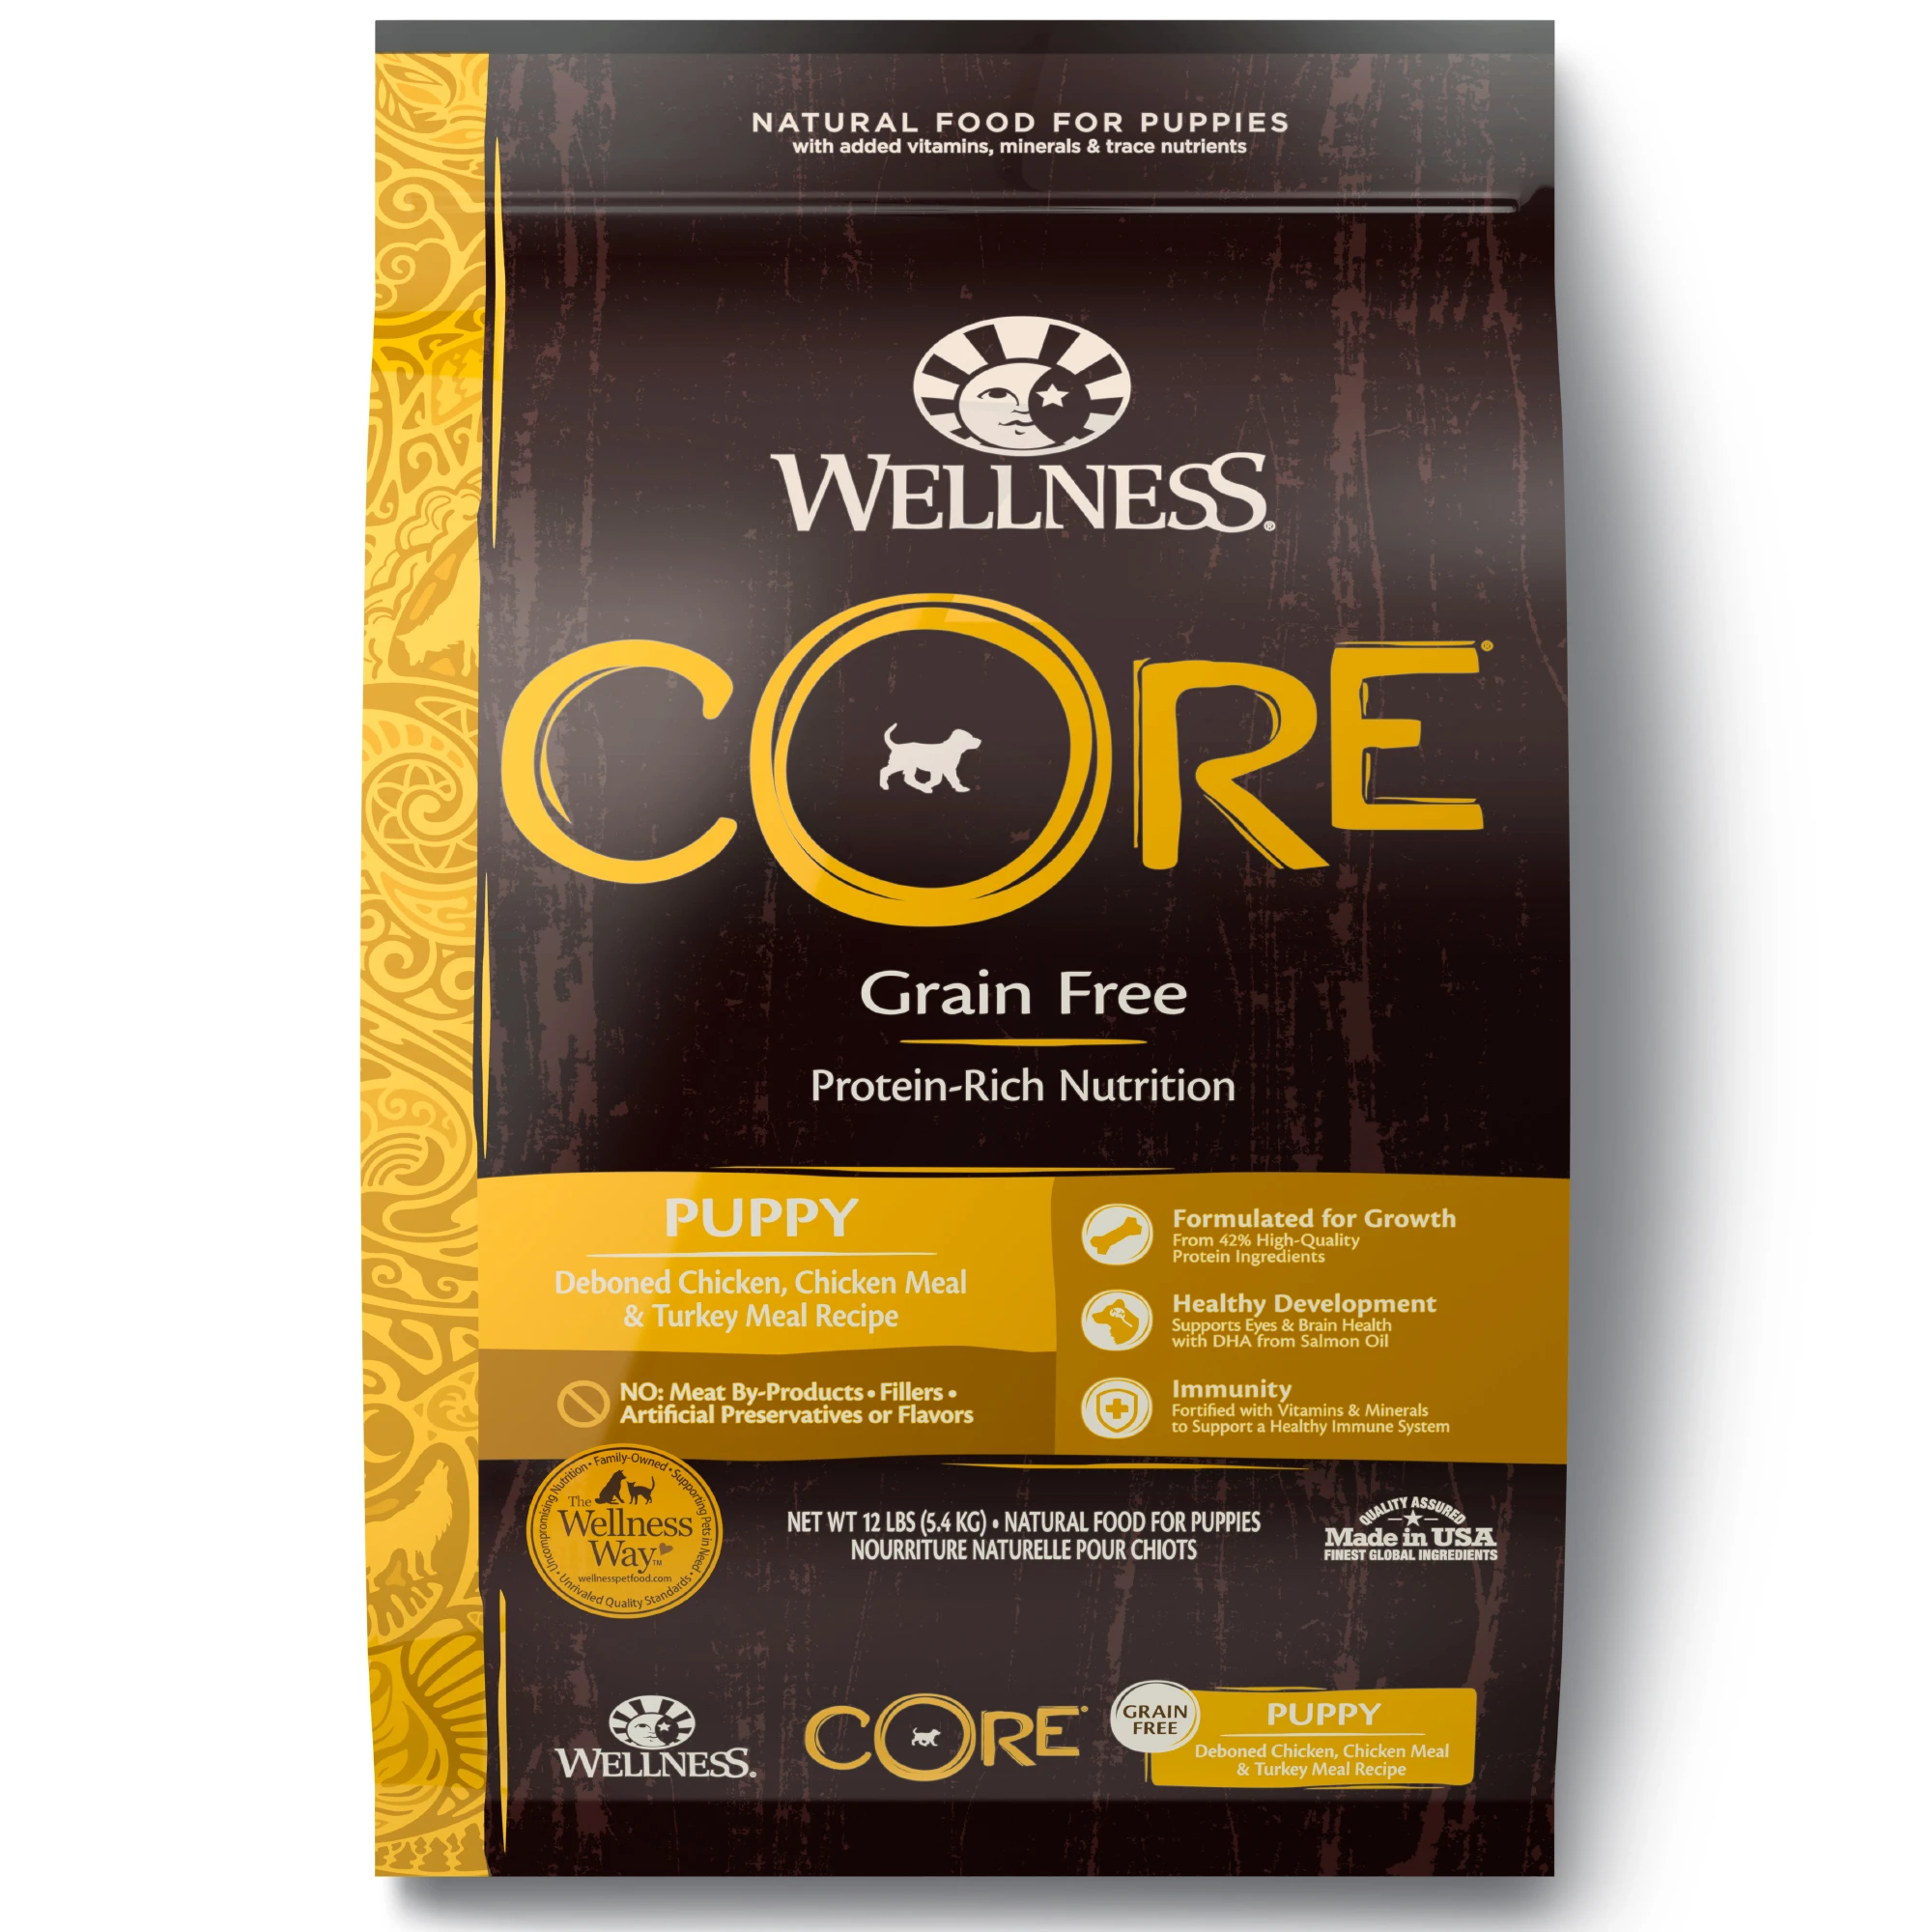 Wellness Core GF Puppy Dog Food